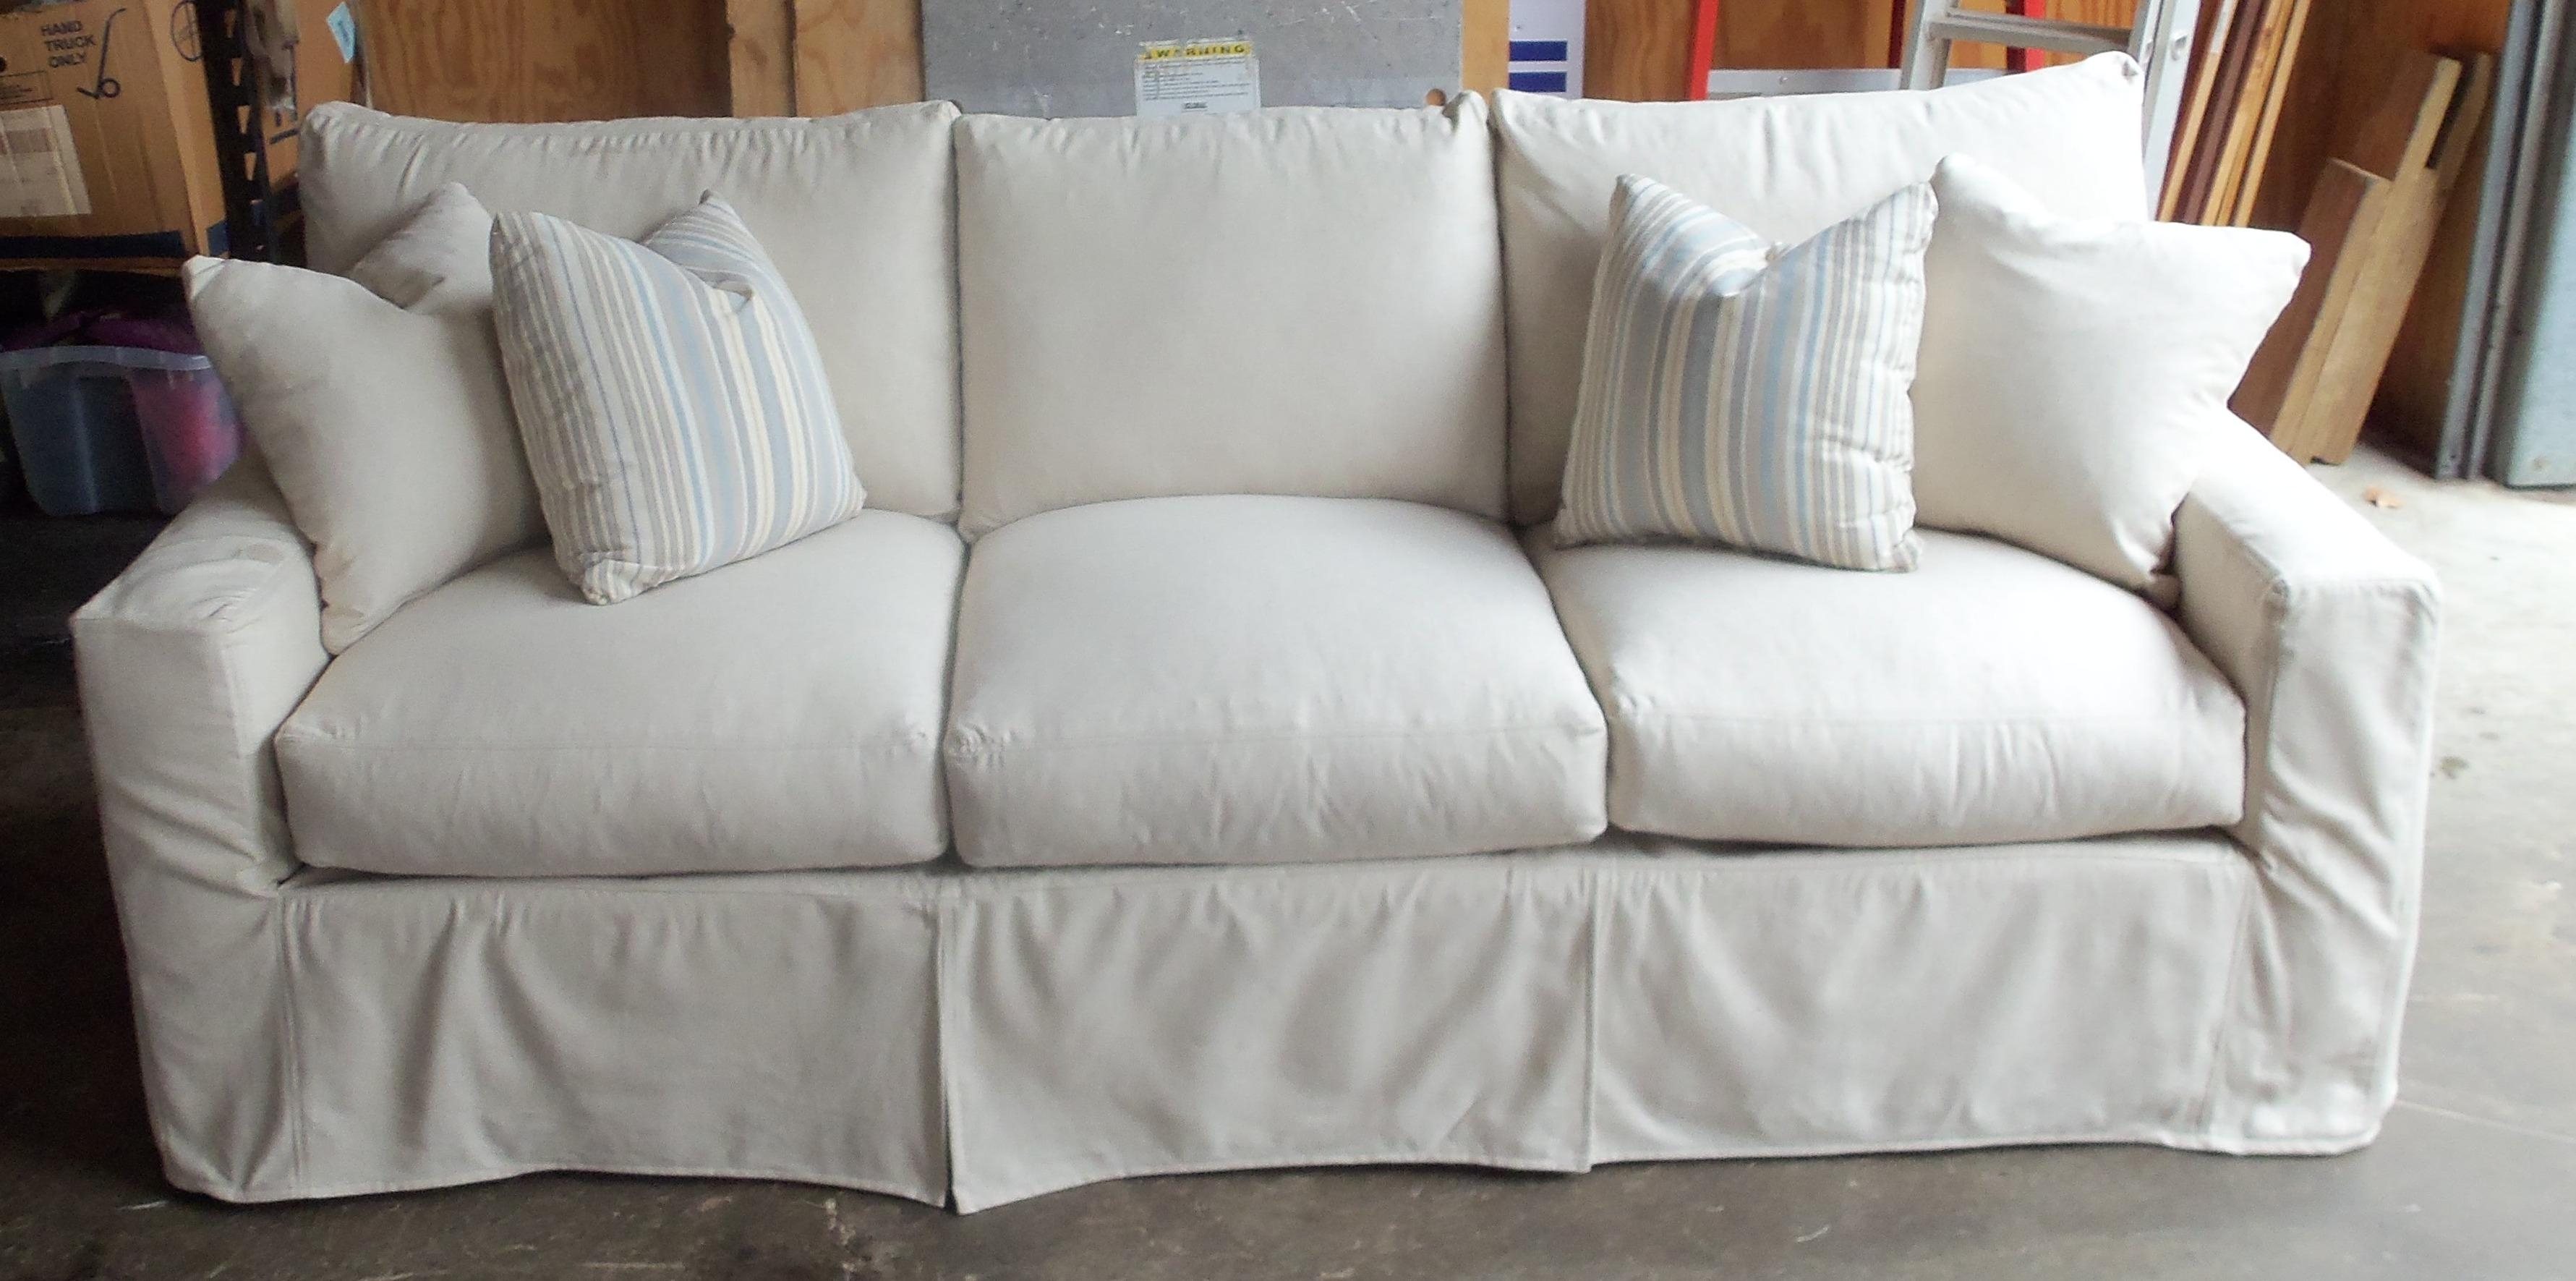 rowe nantucket sofa slipcover replacement queen air sleeper 20 43 choices of slipcovers ideas